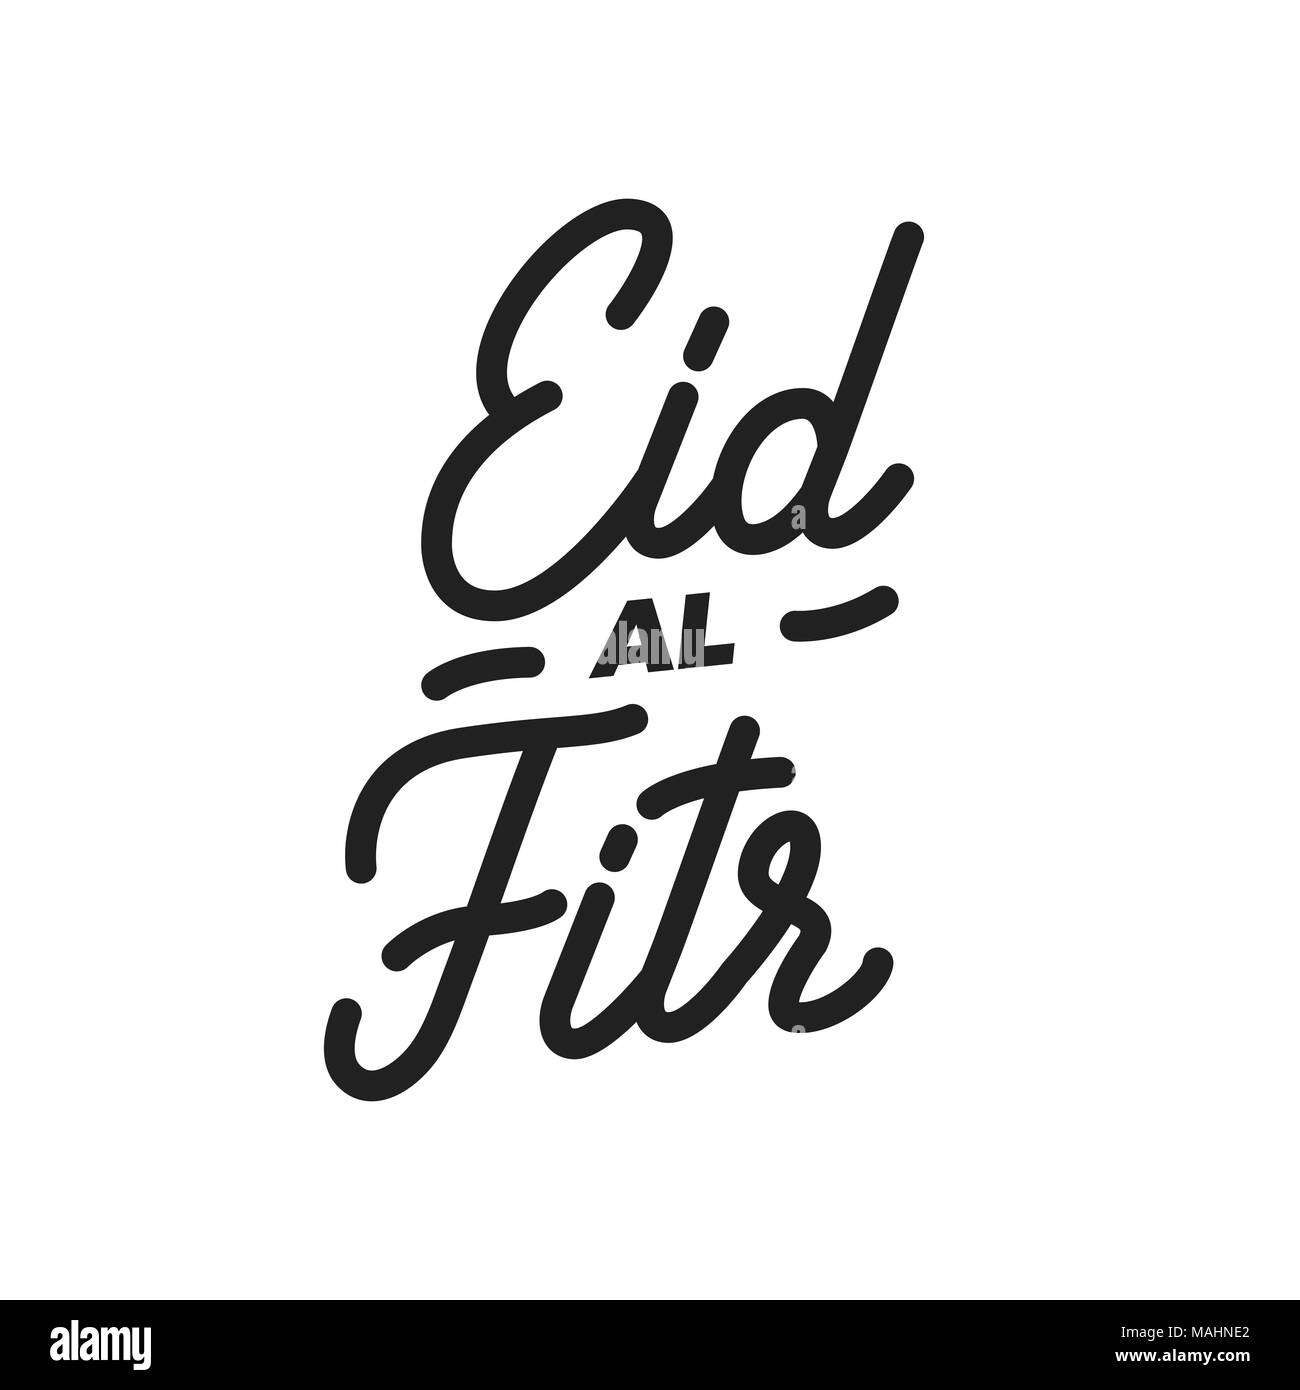 Fantastic Ramadan Eid Al-Fitr Feast - eid-al-fitr-muslim-holiday-lettering-design-for-the-end-of-ramadan-holy-month-feast-of-breaking-the-fast-card-MAHNE2  Pictures_285662 .jpg